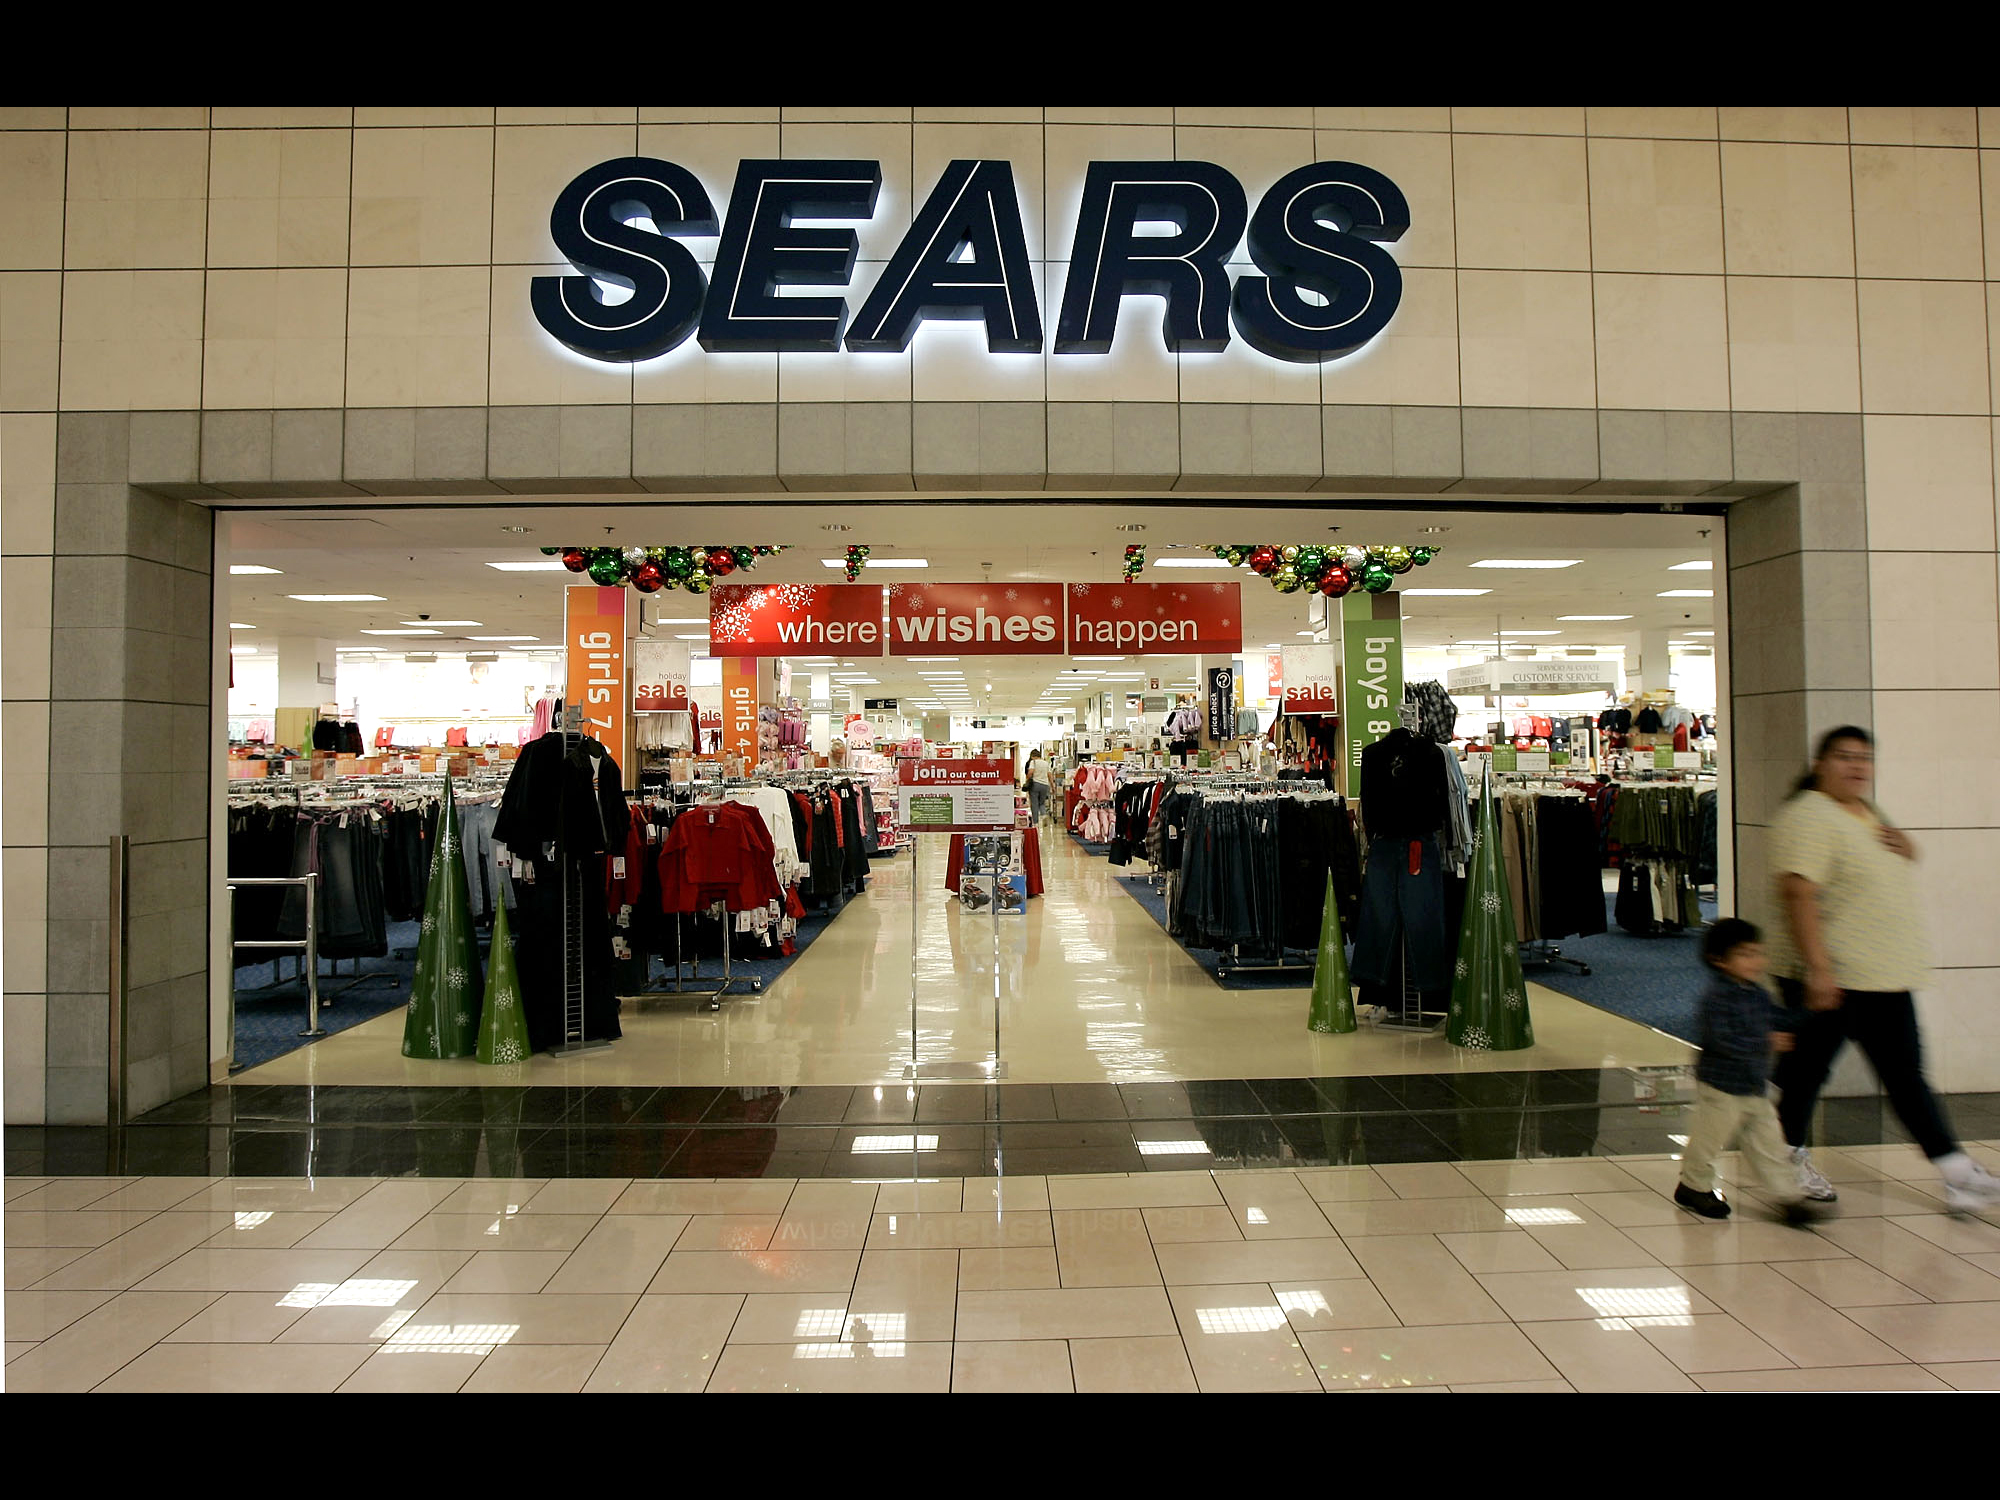 Sears has a huge inventory of great gifts to snatch up for the holidays. Shop for apparel, footwear, lighting, home goods and more while getting the most out of your ticketfinder.ga an eye out for Sears coupons and promo codes to save even more on everything they'll love this season.